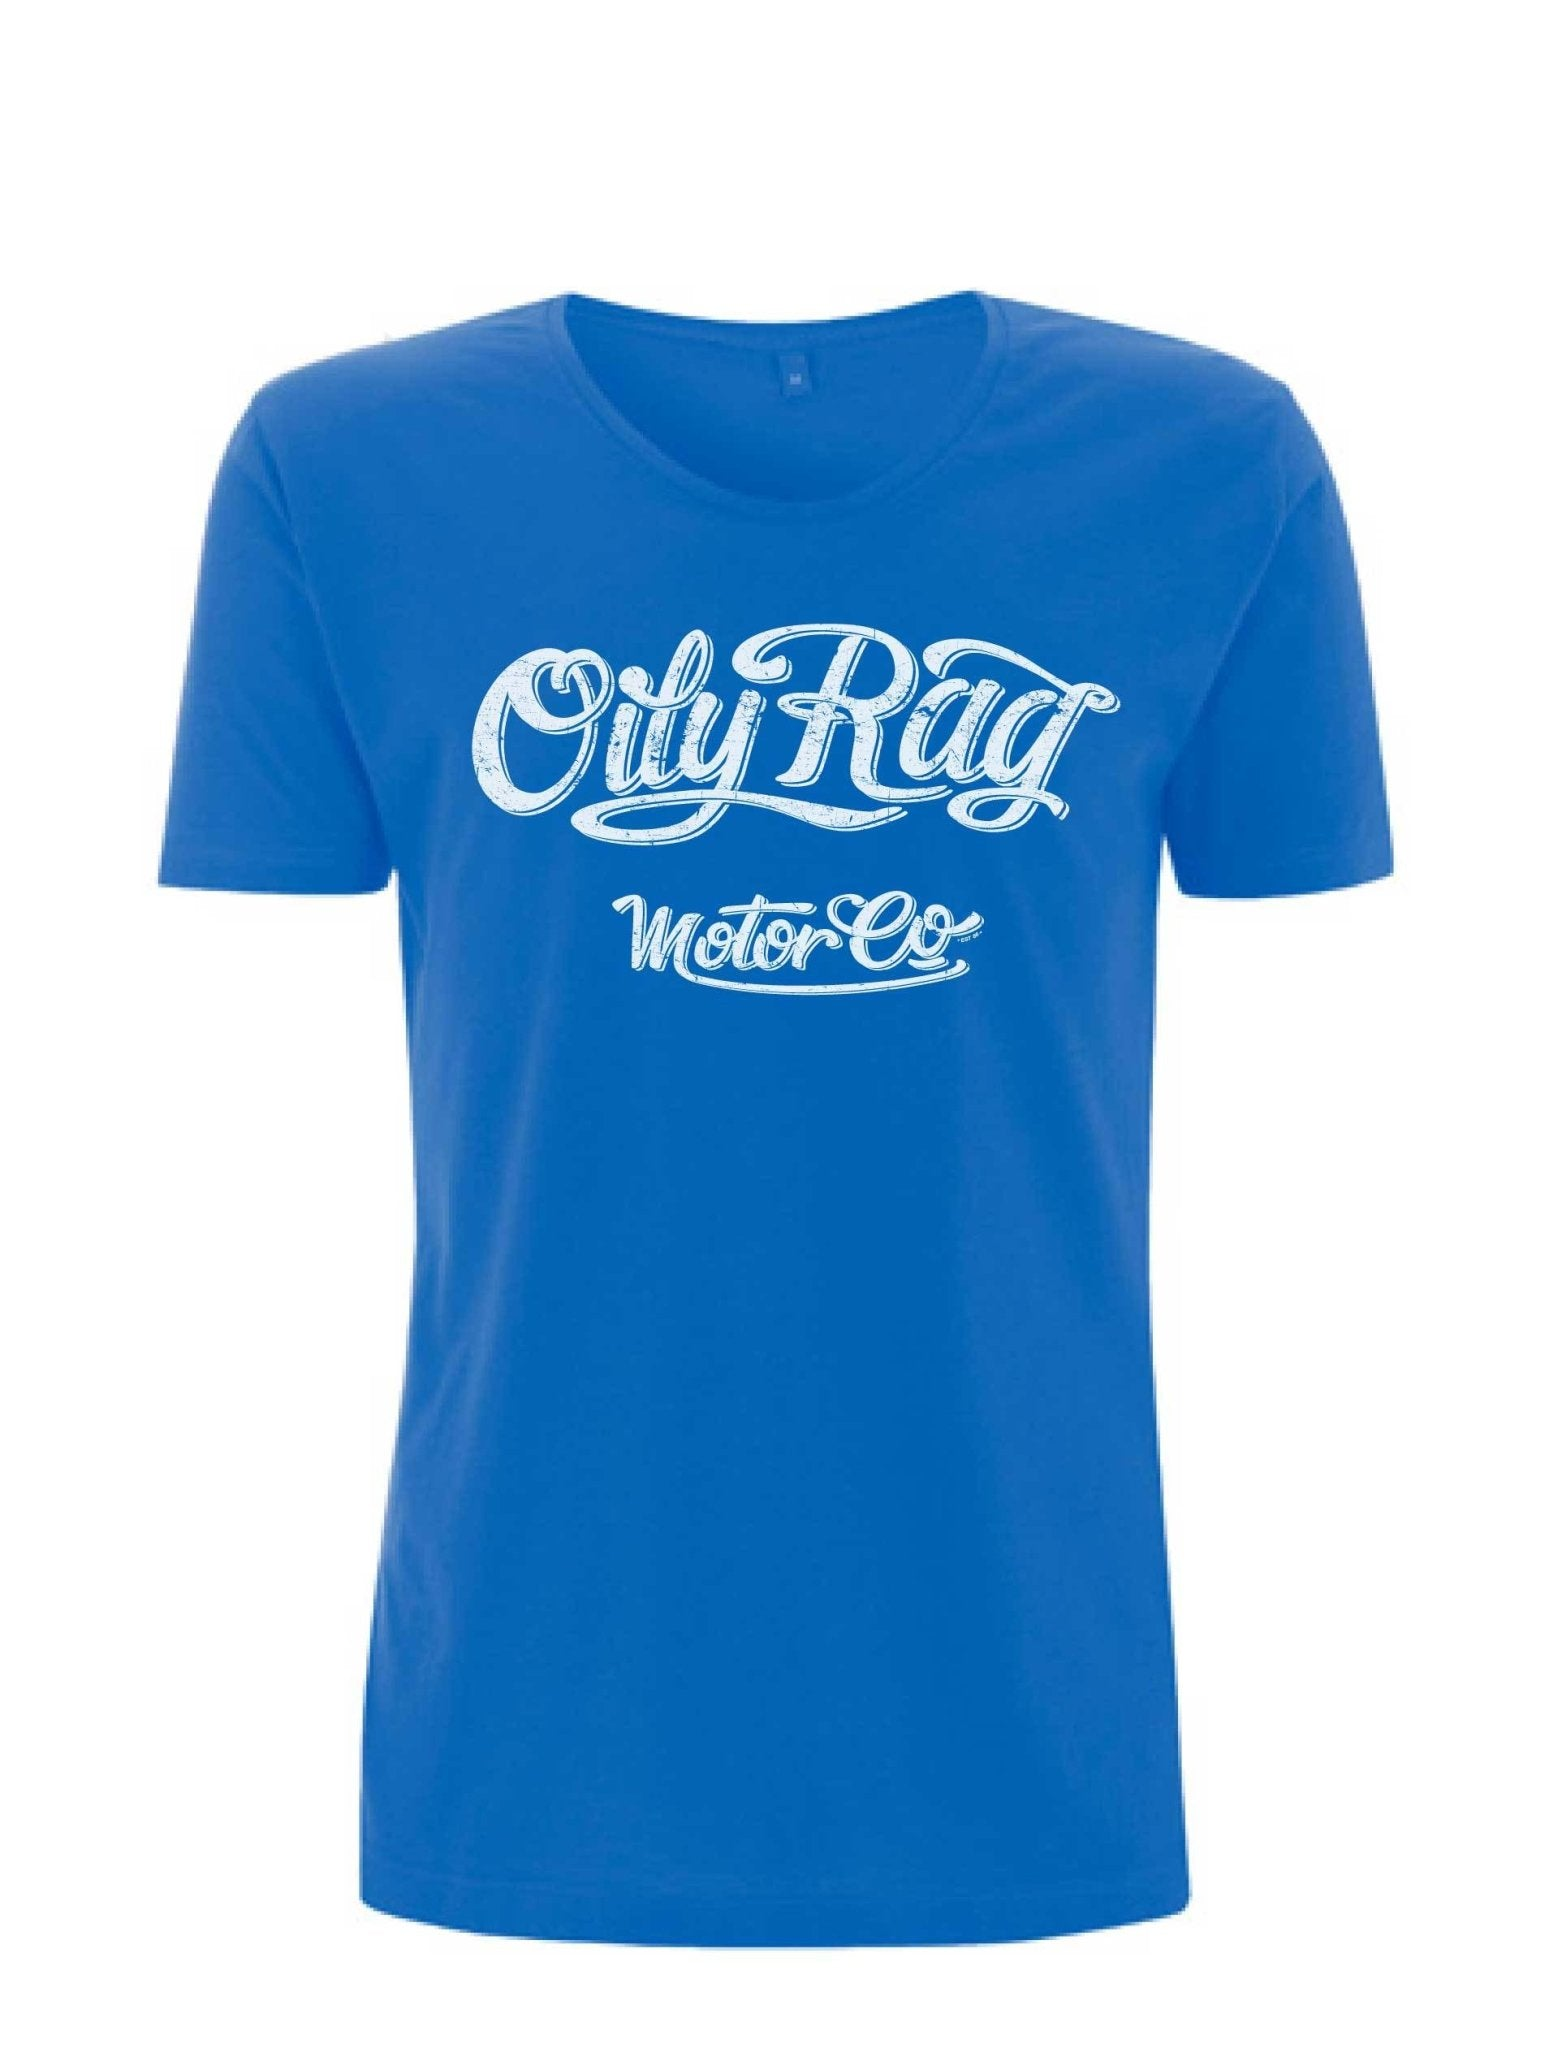 Oily Rag Clothing - Oily Rag Clothing Motor Co Ladies scoop necked T'Shirt in Blue - T-Shirts - Salt Flats Clothing